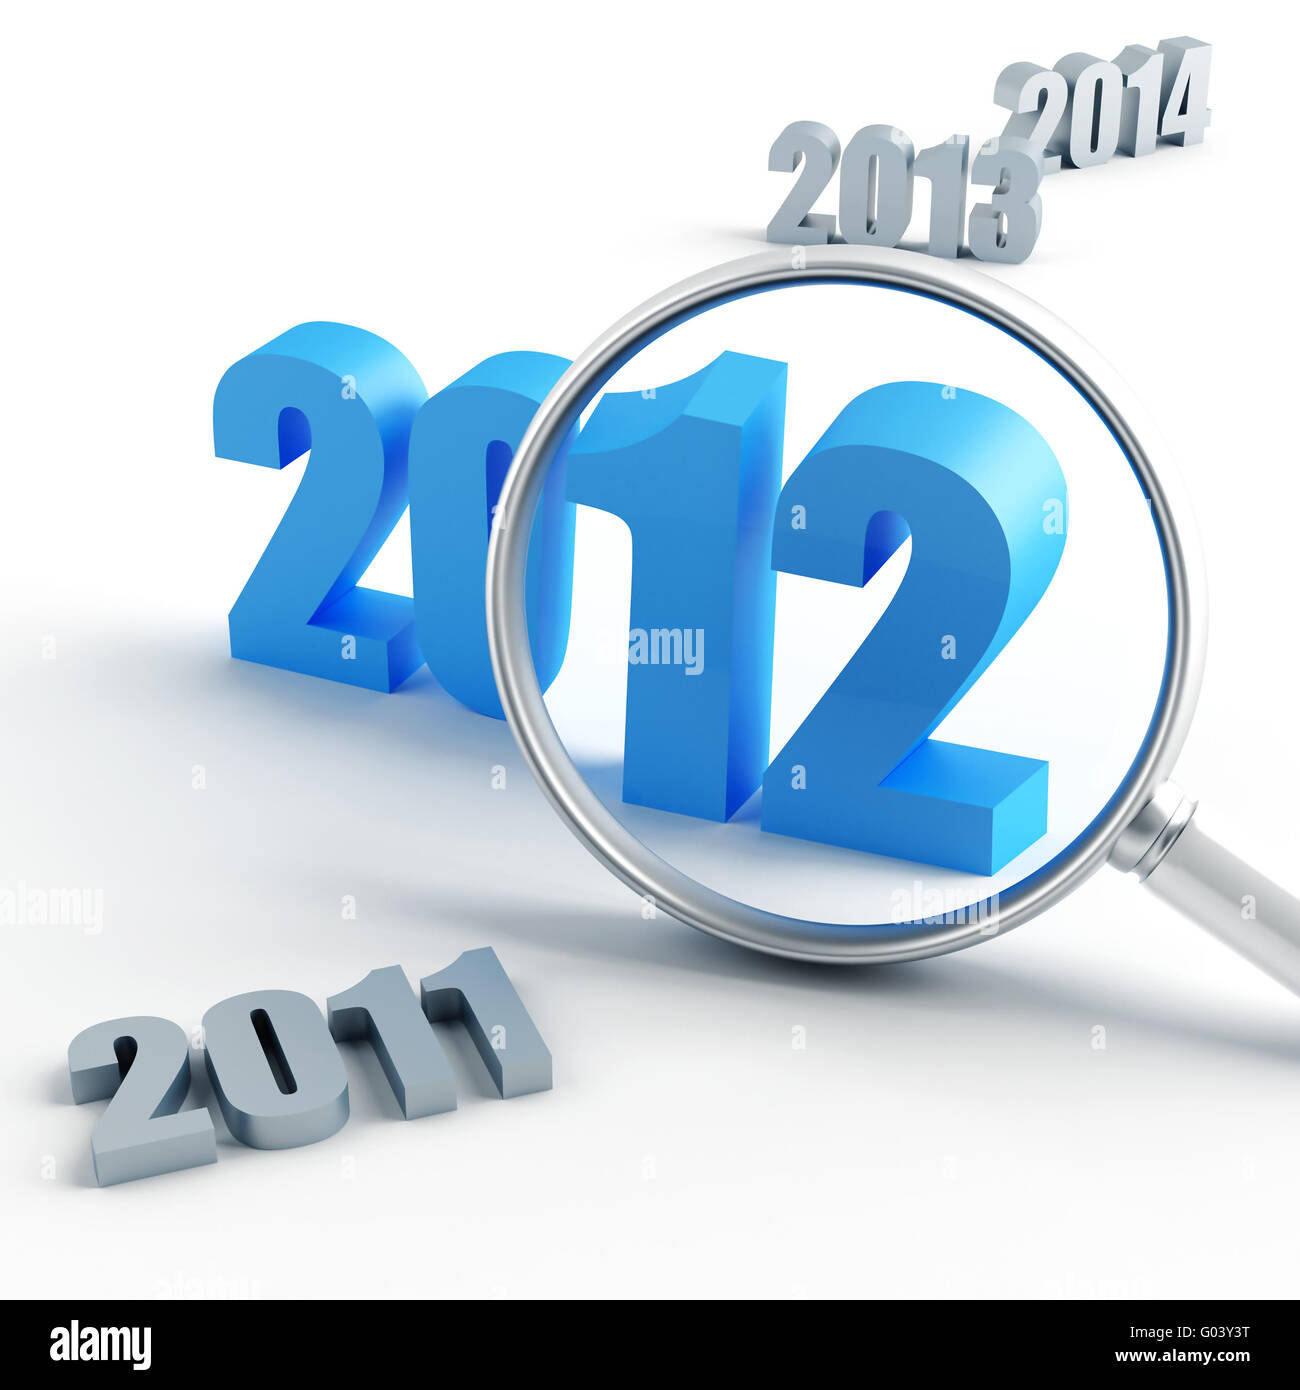 new 2012 year under magnification and other years - Stock Image